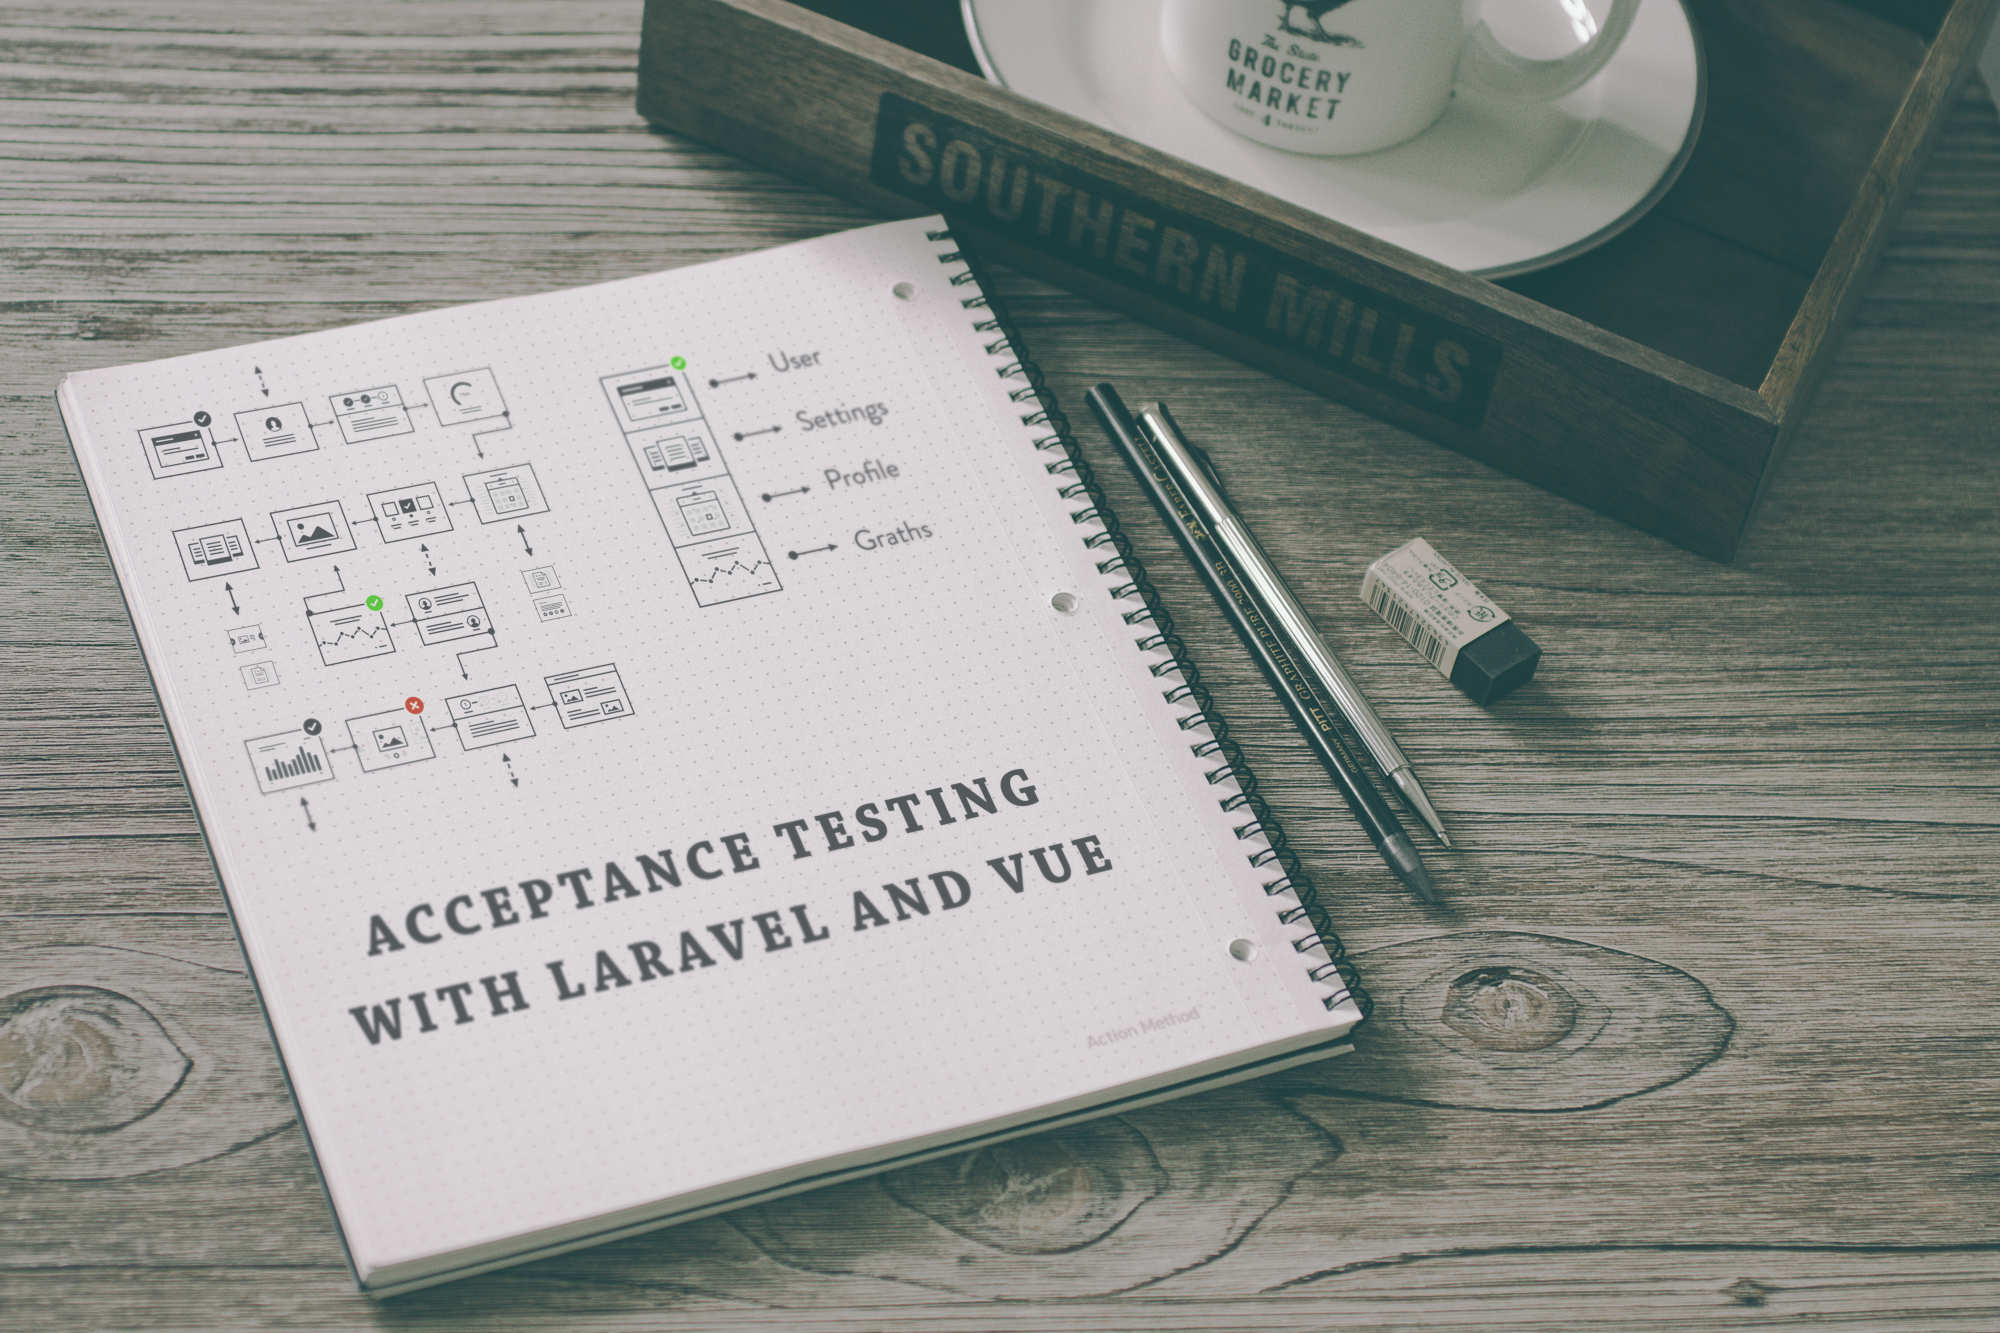 Acceptance Testing a Laravel and Vue.js Application